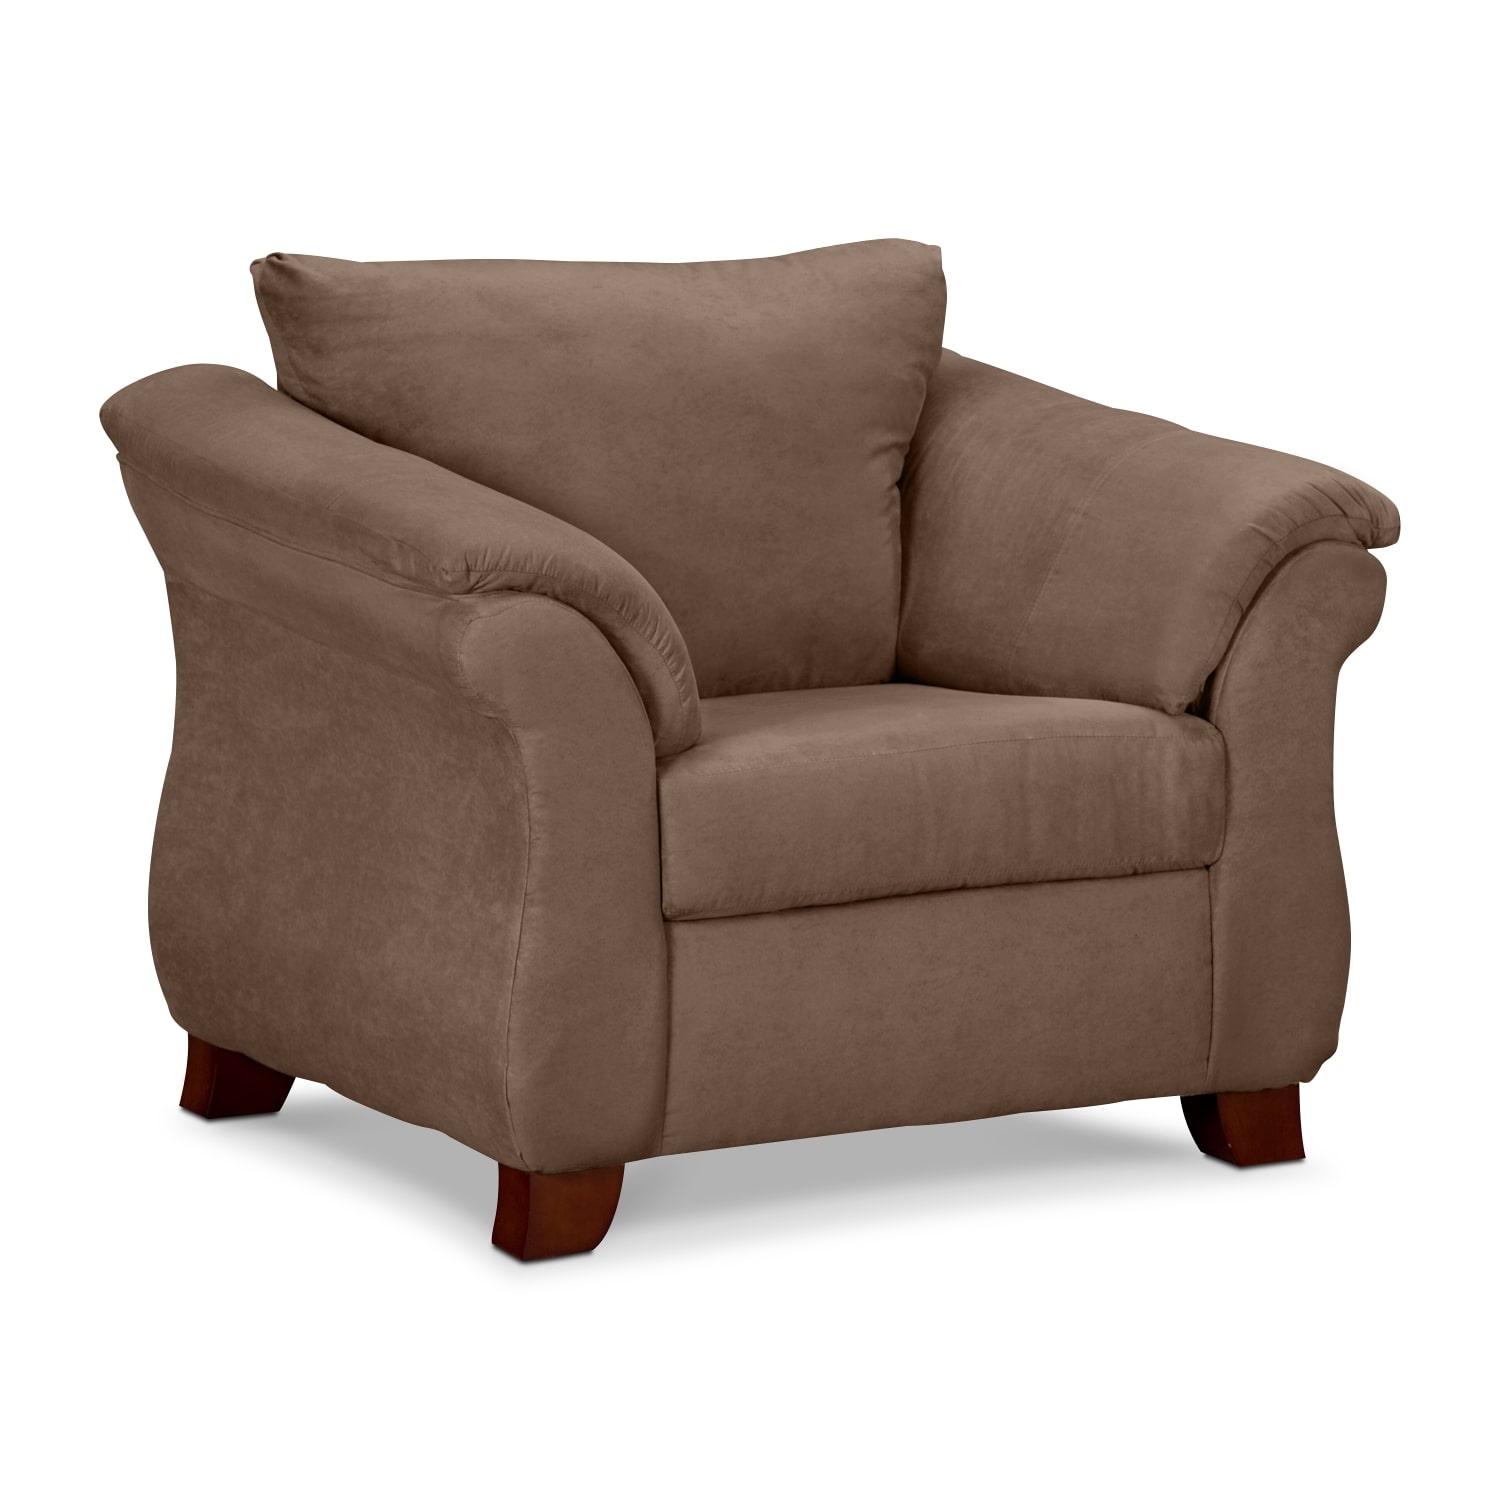 Adrian Taupe Upholstery Chair Value City Furniture : 273934 from valuecityfurniture.com size 1500 x 1500 jpeg 473kB